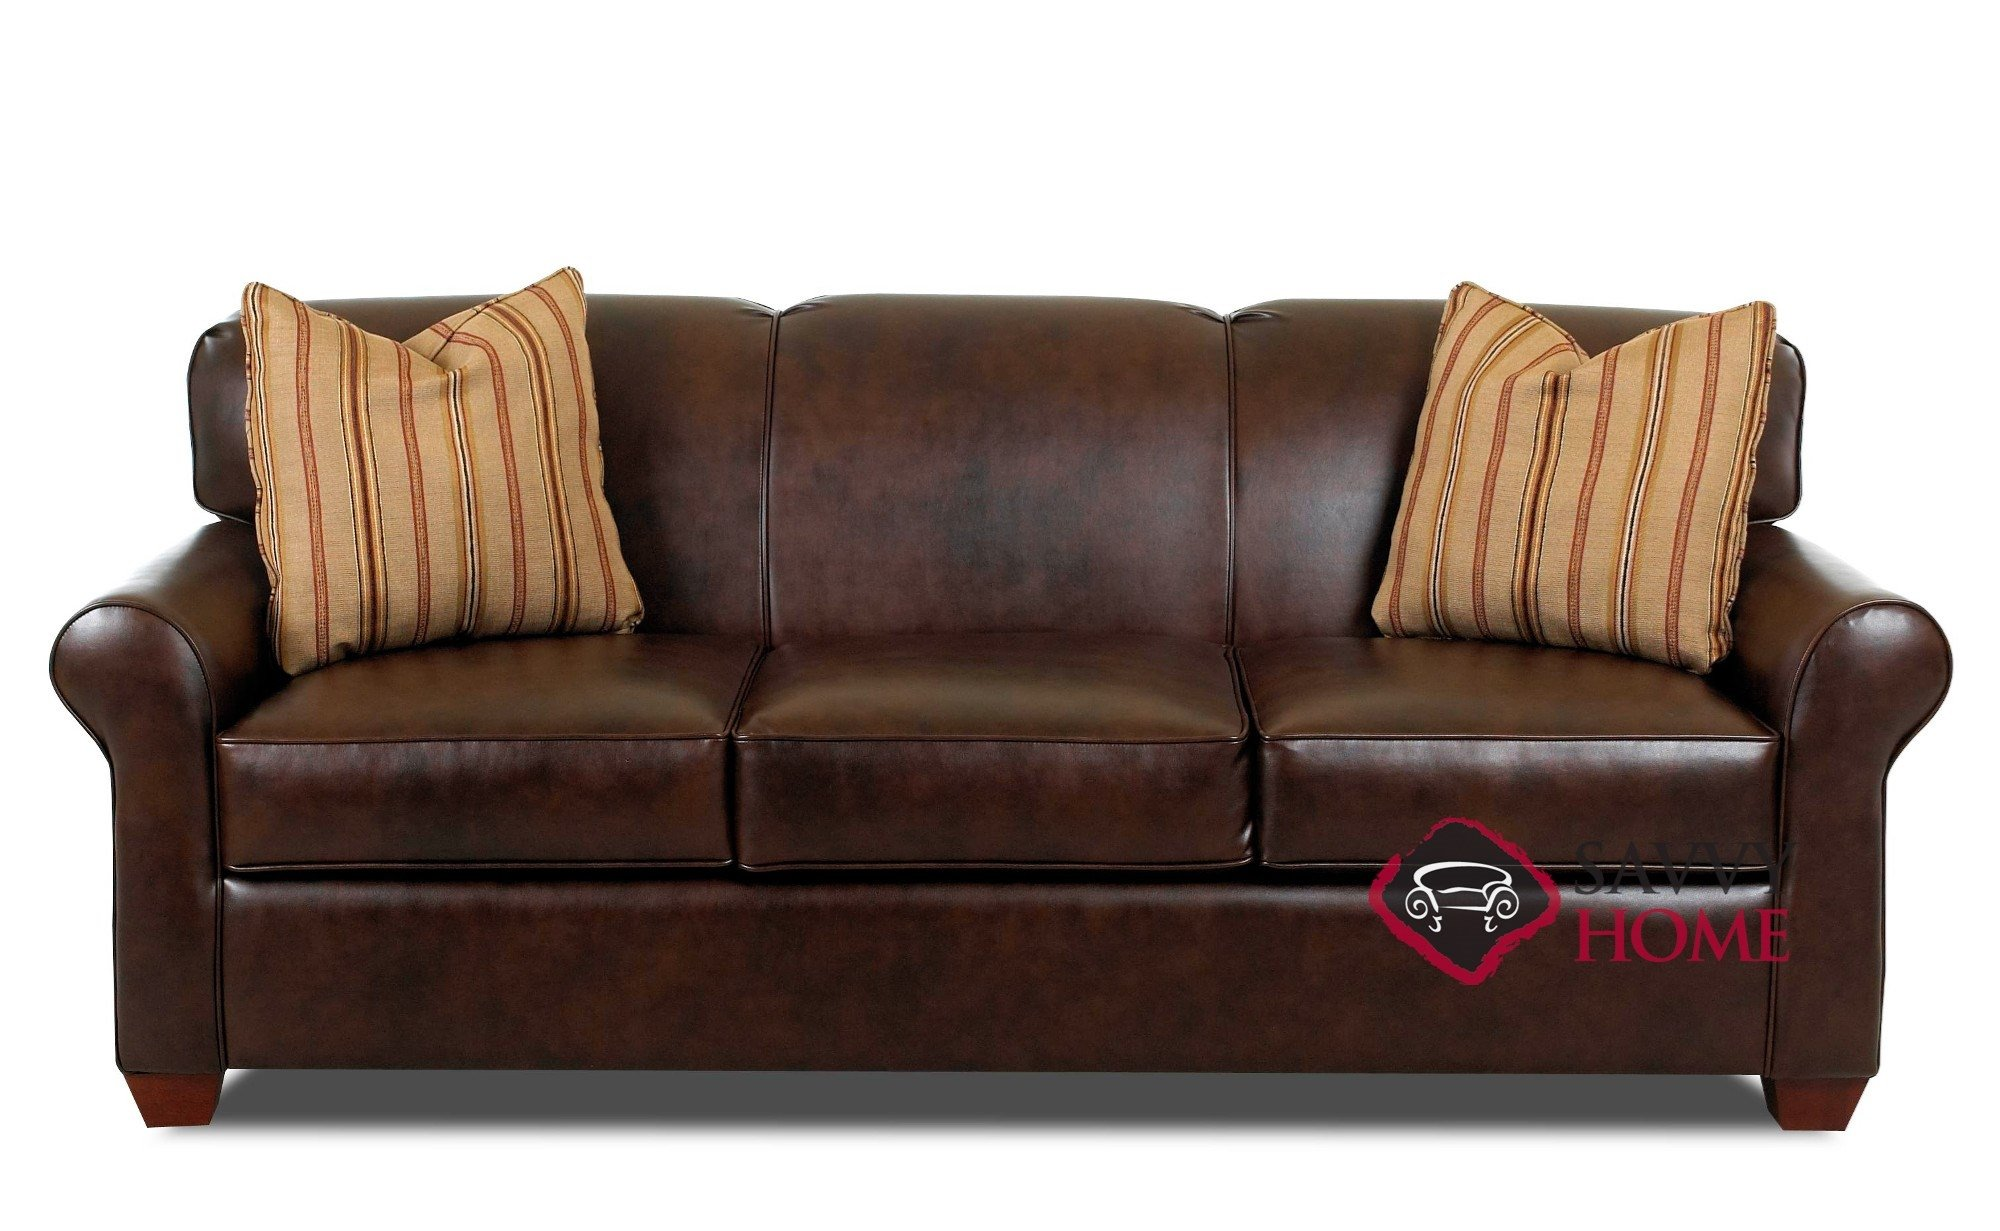 Sofa Queen Calgary Queen Leather Sofa Bed By Savvy